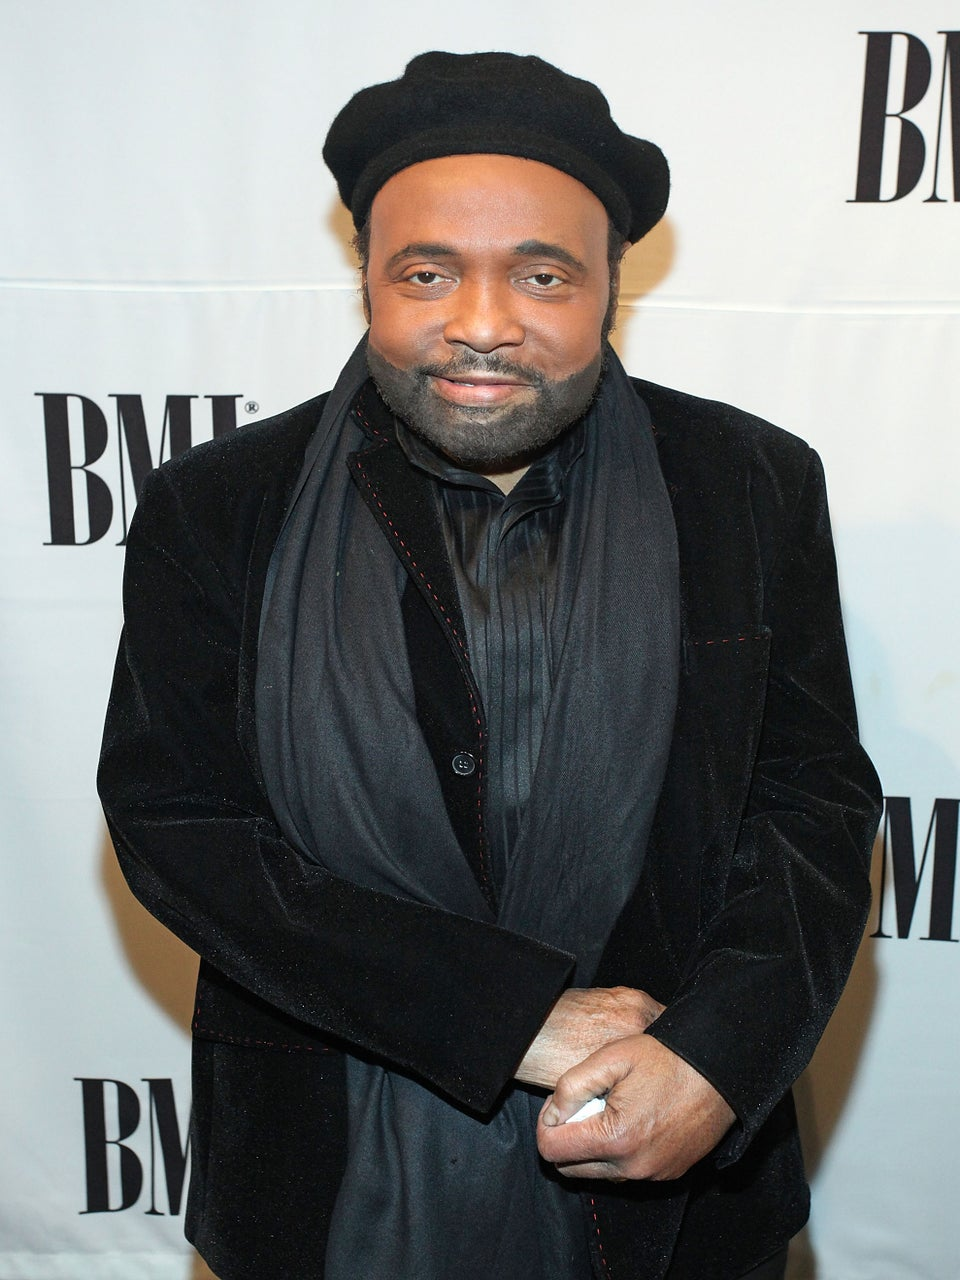 5 Questions with Gospel Great Andrae Crouch on His 'Journey'